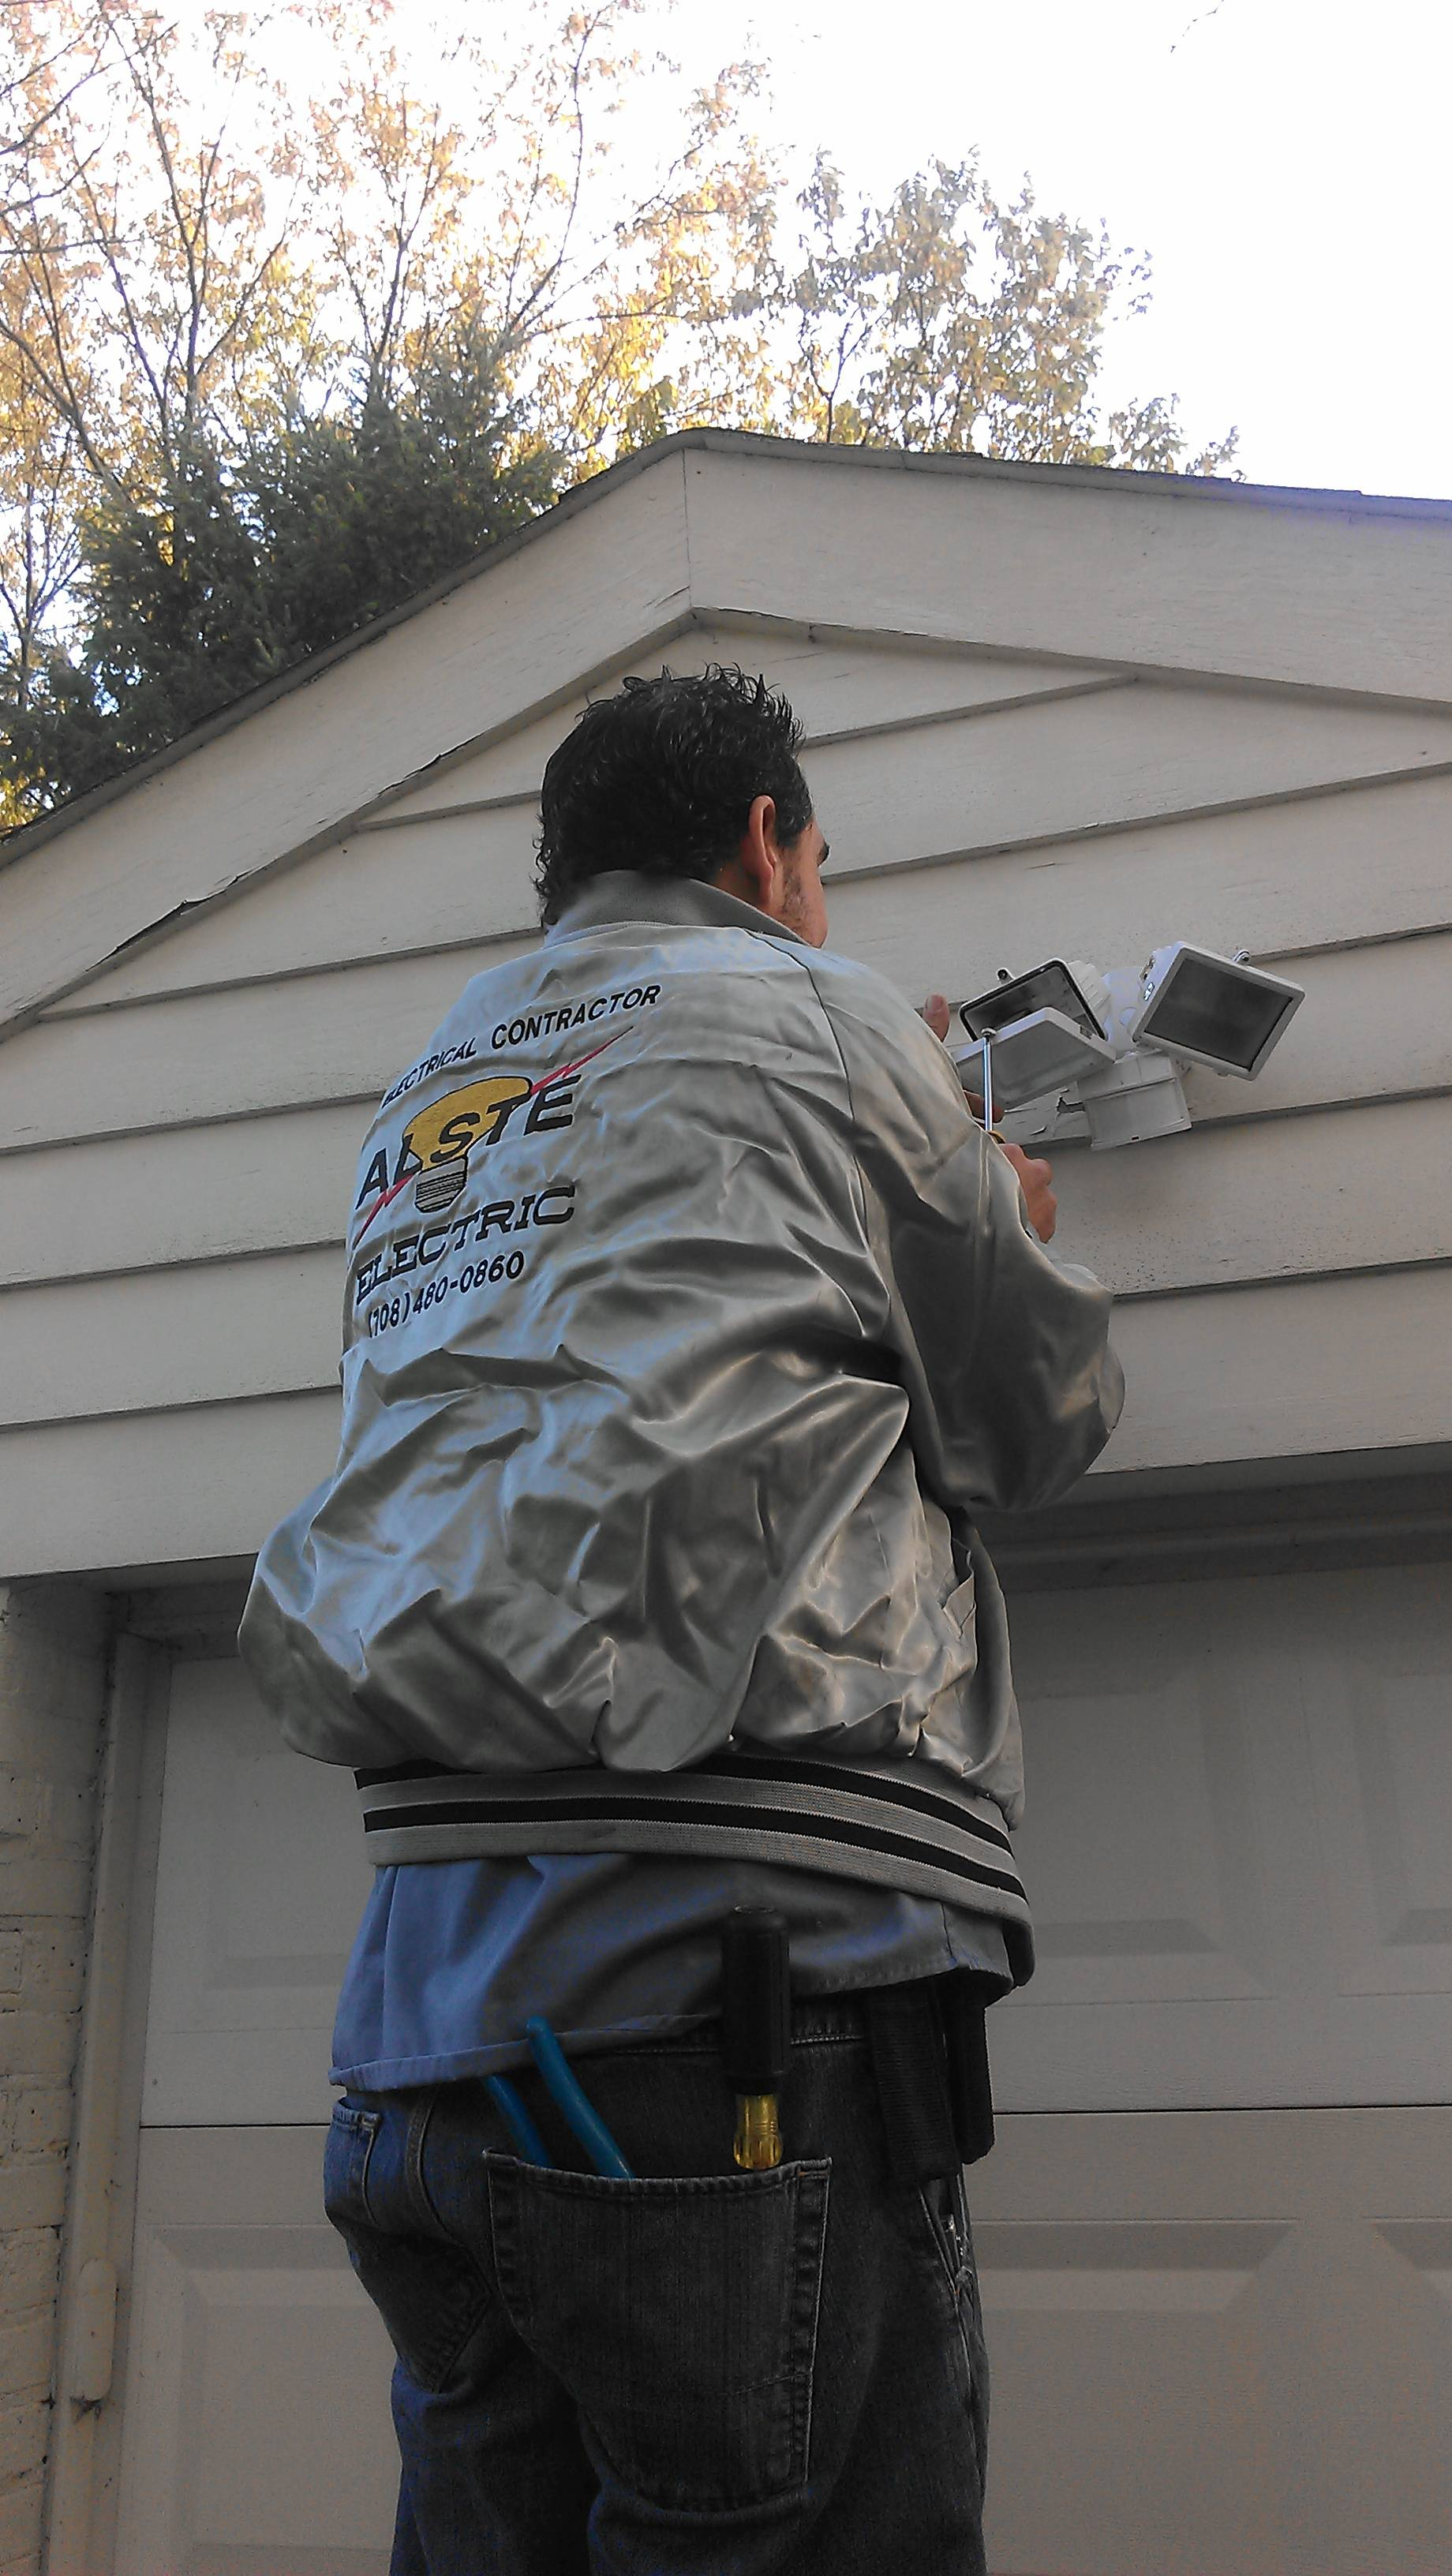 Alan Edelman from ALSTE Electric installing security lighting.